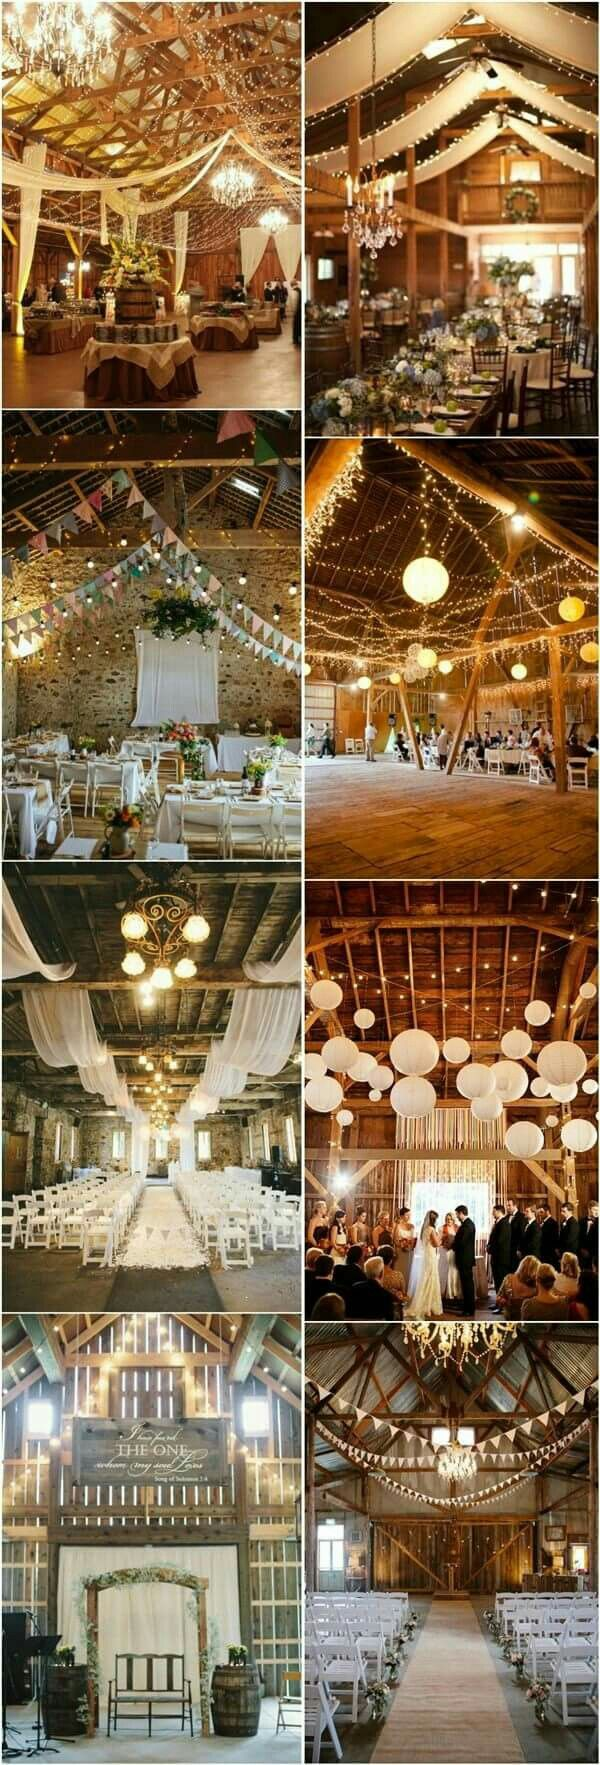 Wedding decorations tulle and lights  Country rustic elegant barn wedding decorations  Barn wedding ideas